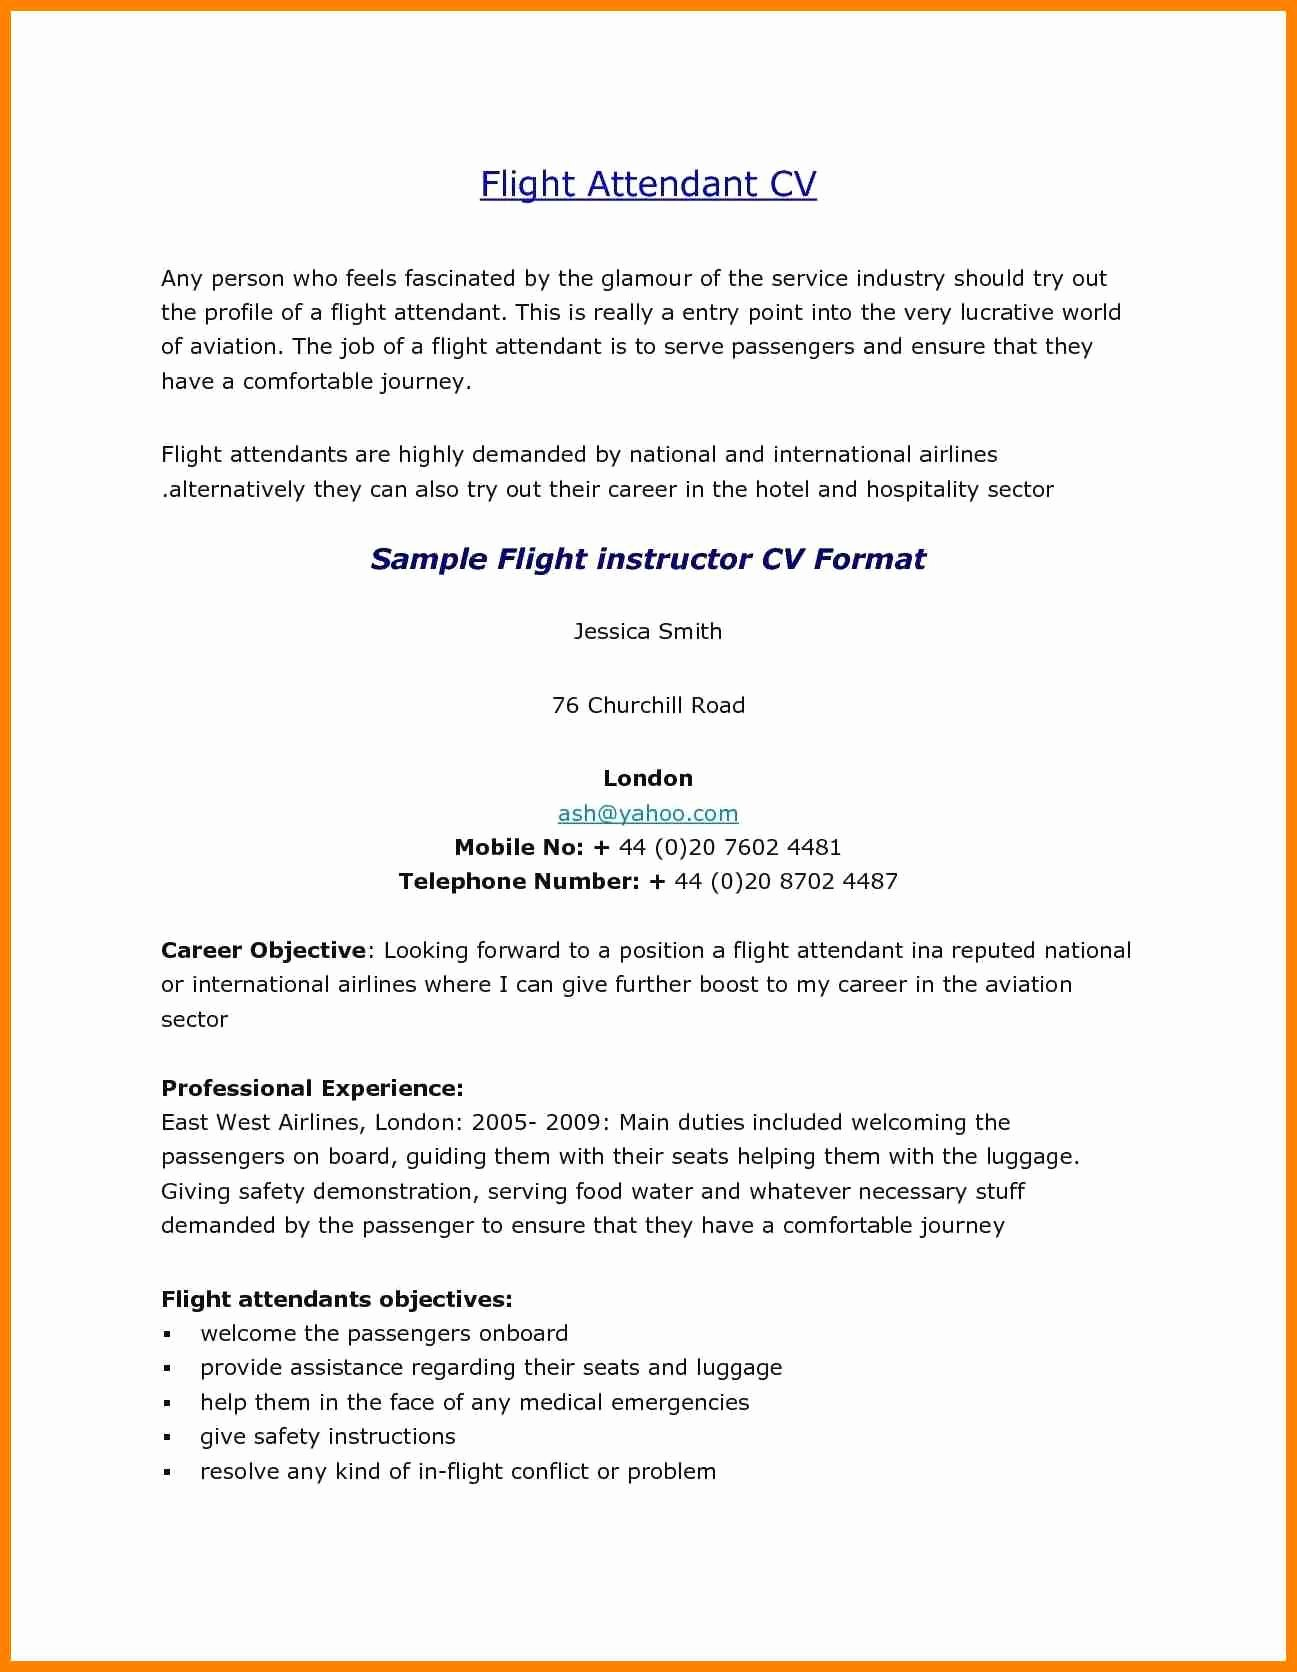 Flight attendant Cover Letter Sample Luxury 11 Cv for Cabin Crew with No Experience